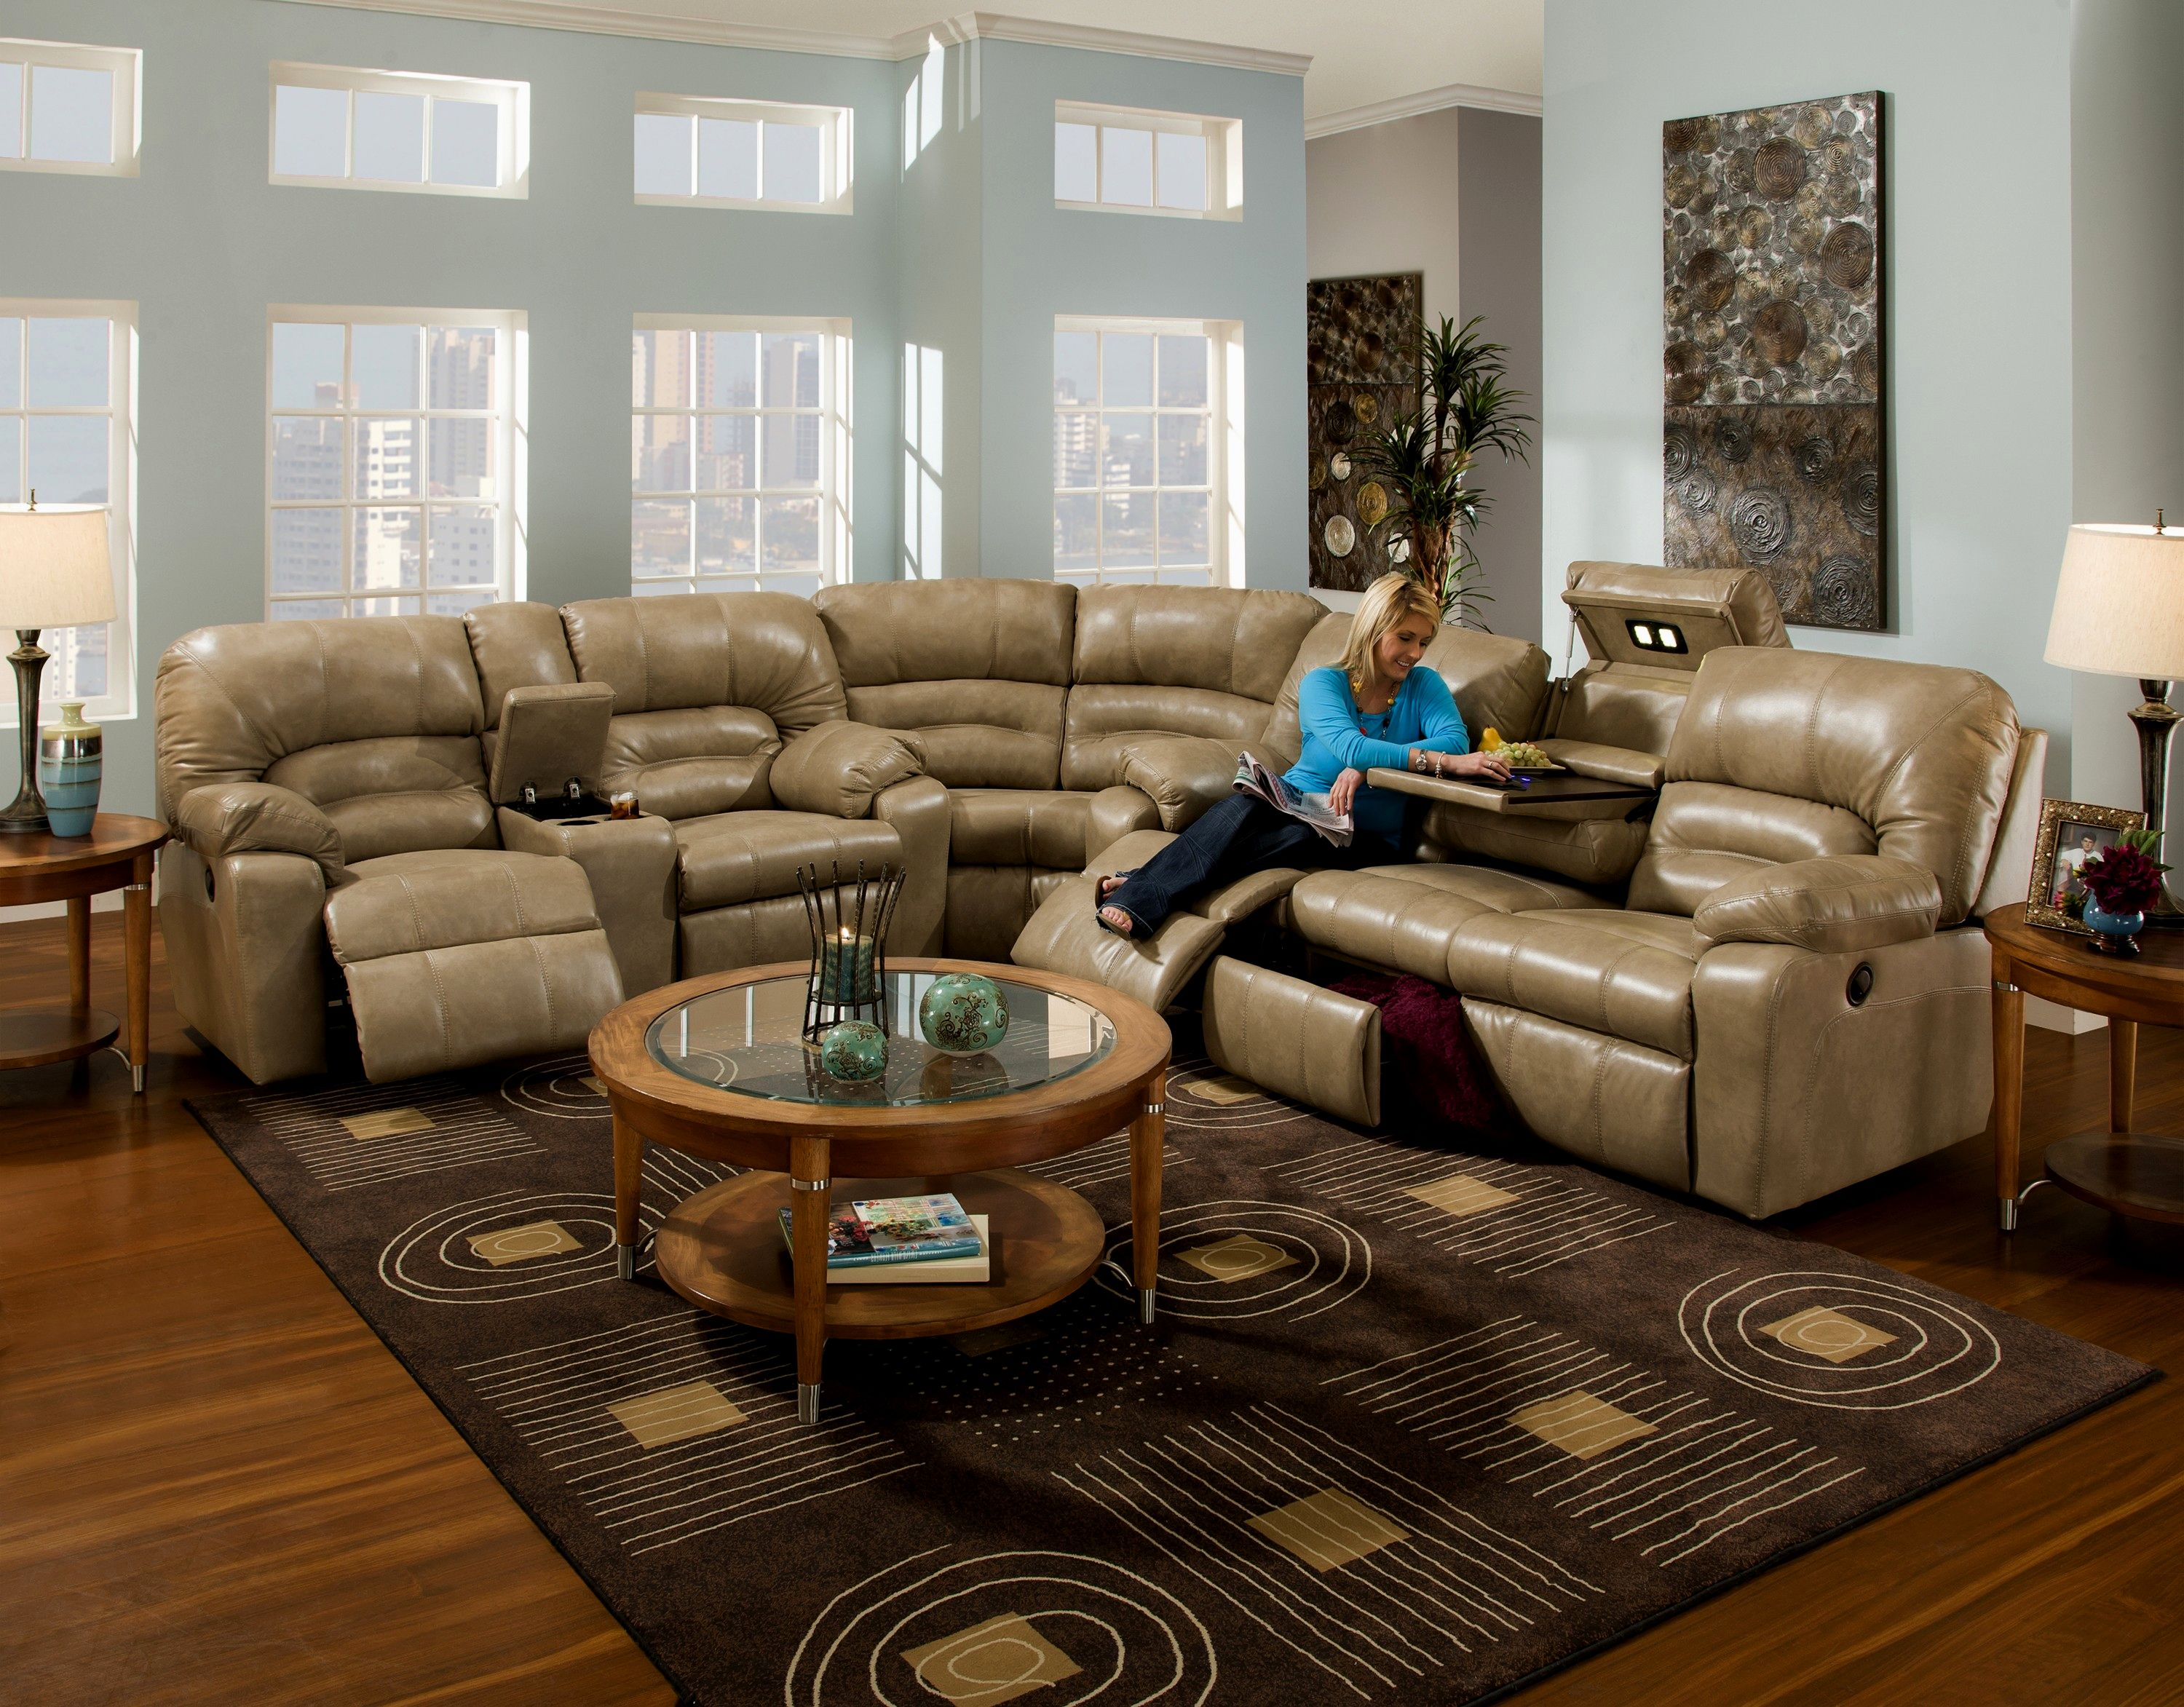 best of bonded leather sofa photograph-Amazing Bonded Leather sofa Online